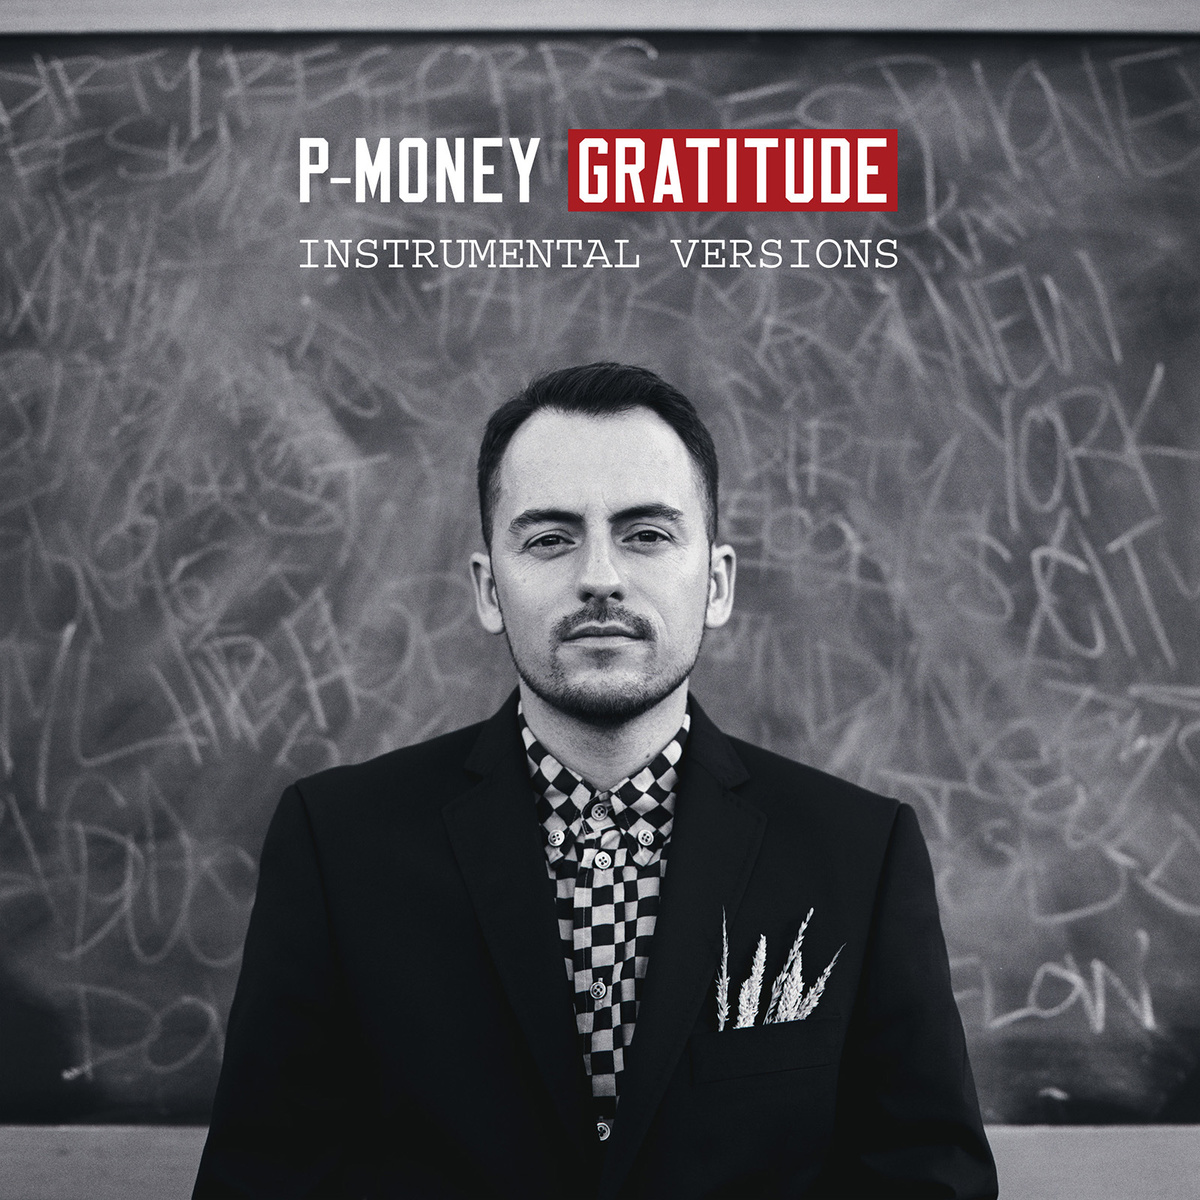 P-Money - Gratitude [instrumental versions]